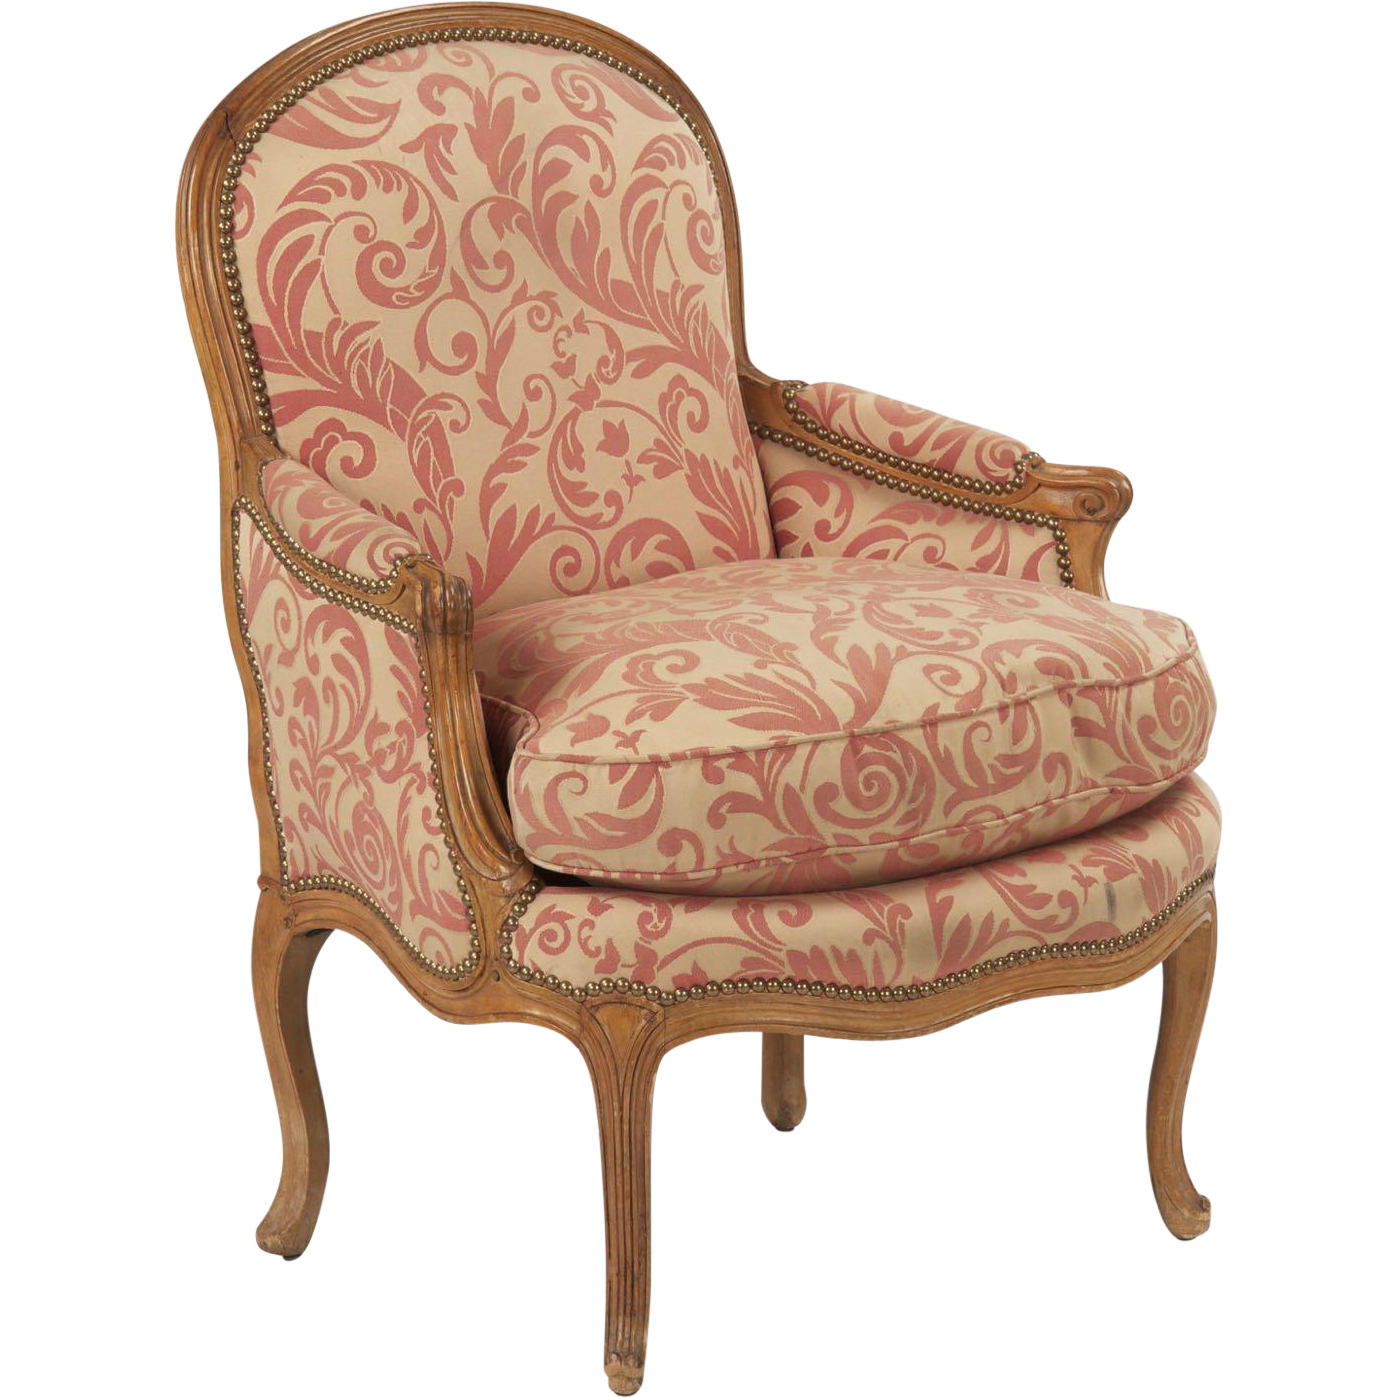 Antique bergere chair - French Antique Bergere Arm Chair C Late 18th Early 19th Century